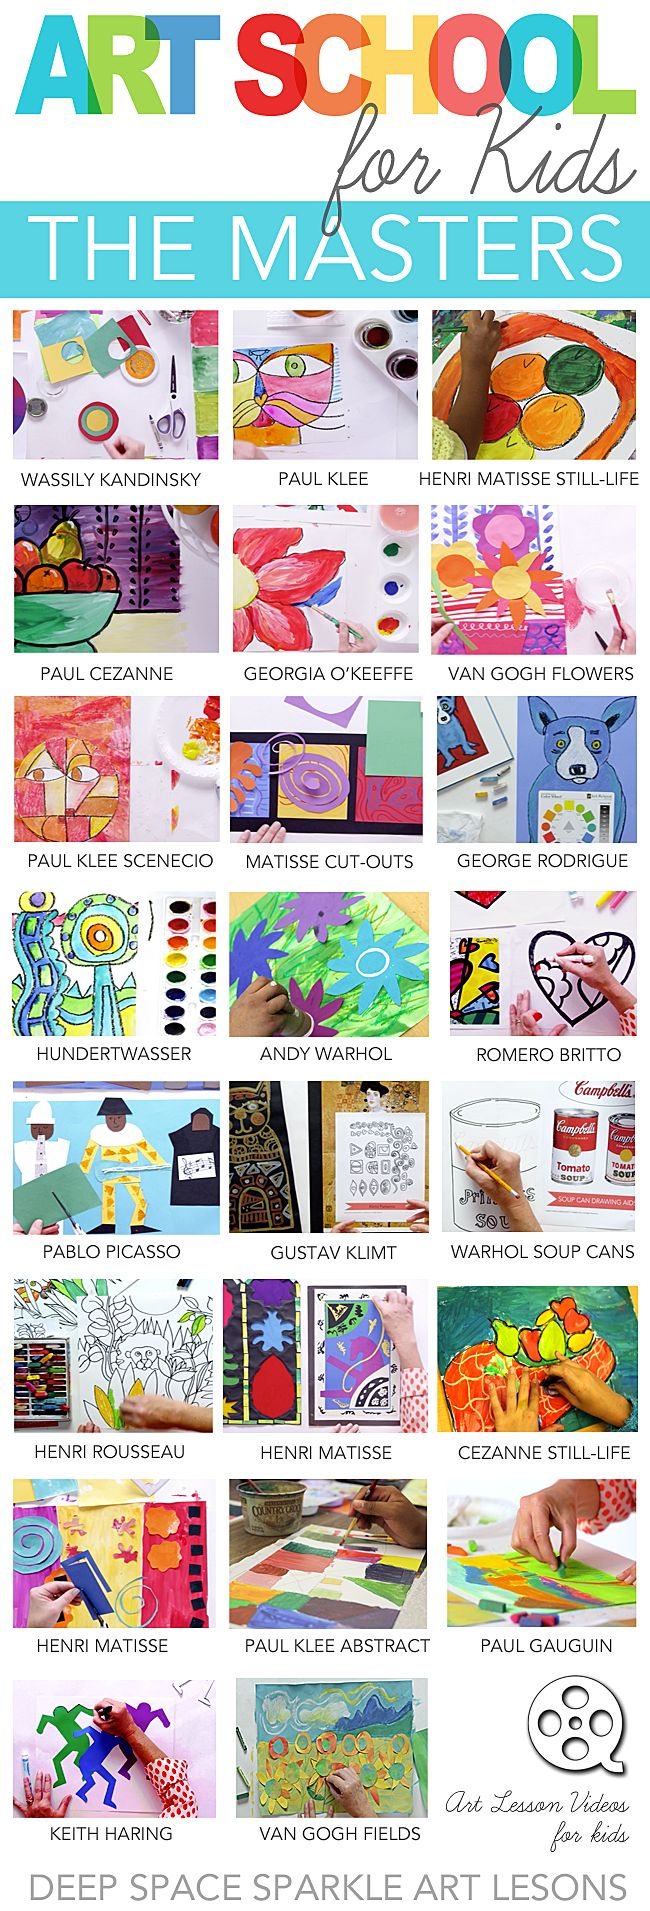 Worksheet Online Elementary School 25 beautiful online art school ideas on pinterest lessons featured artists in for kids